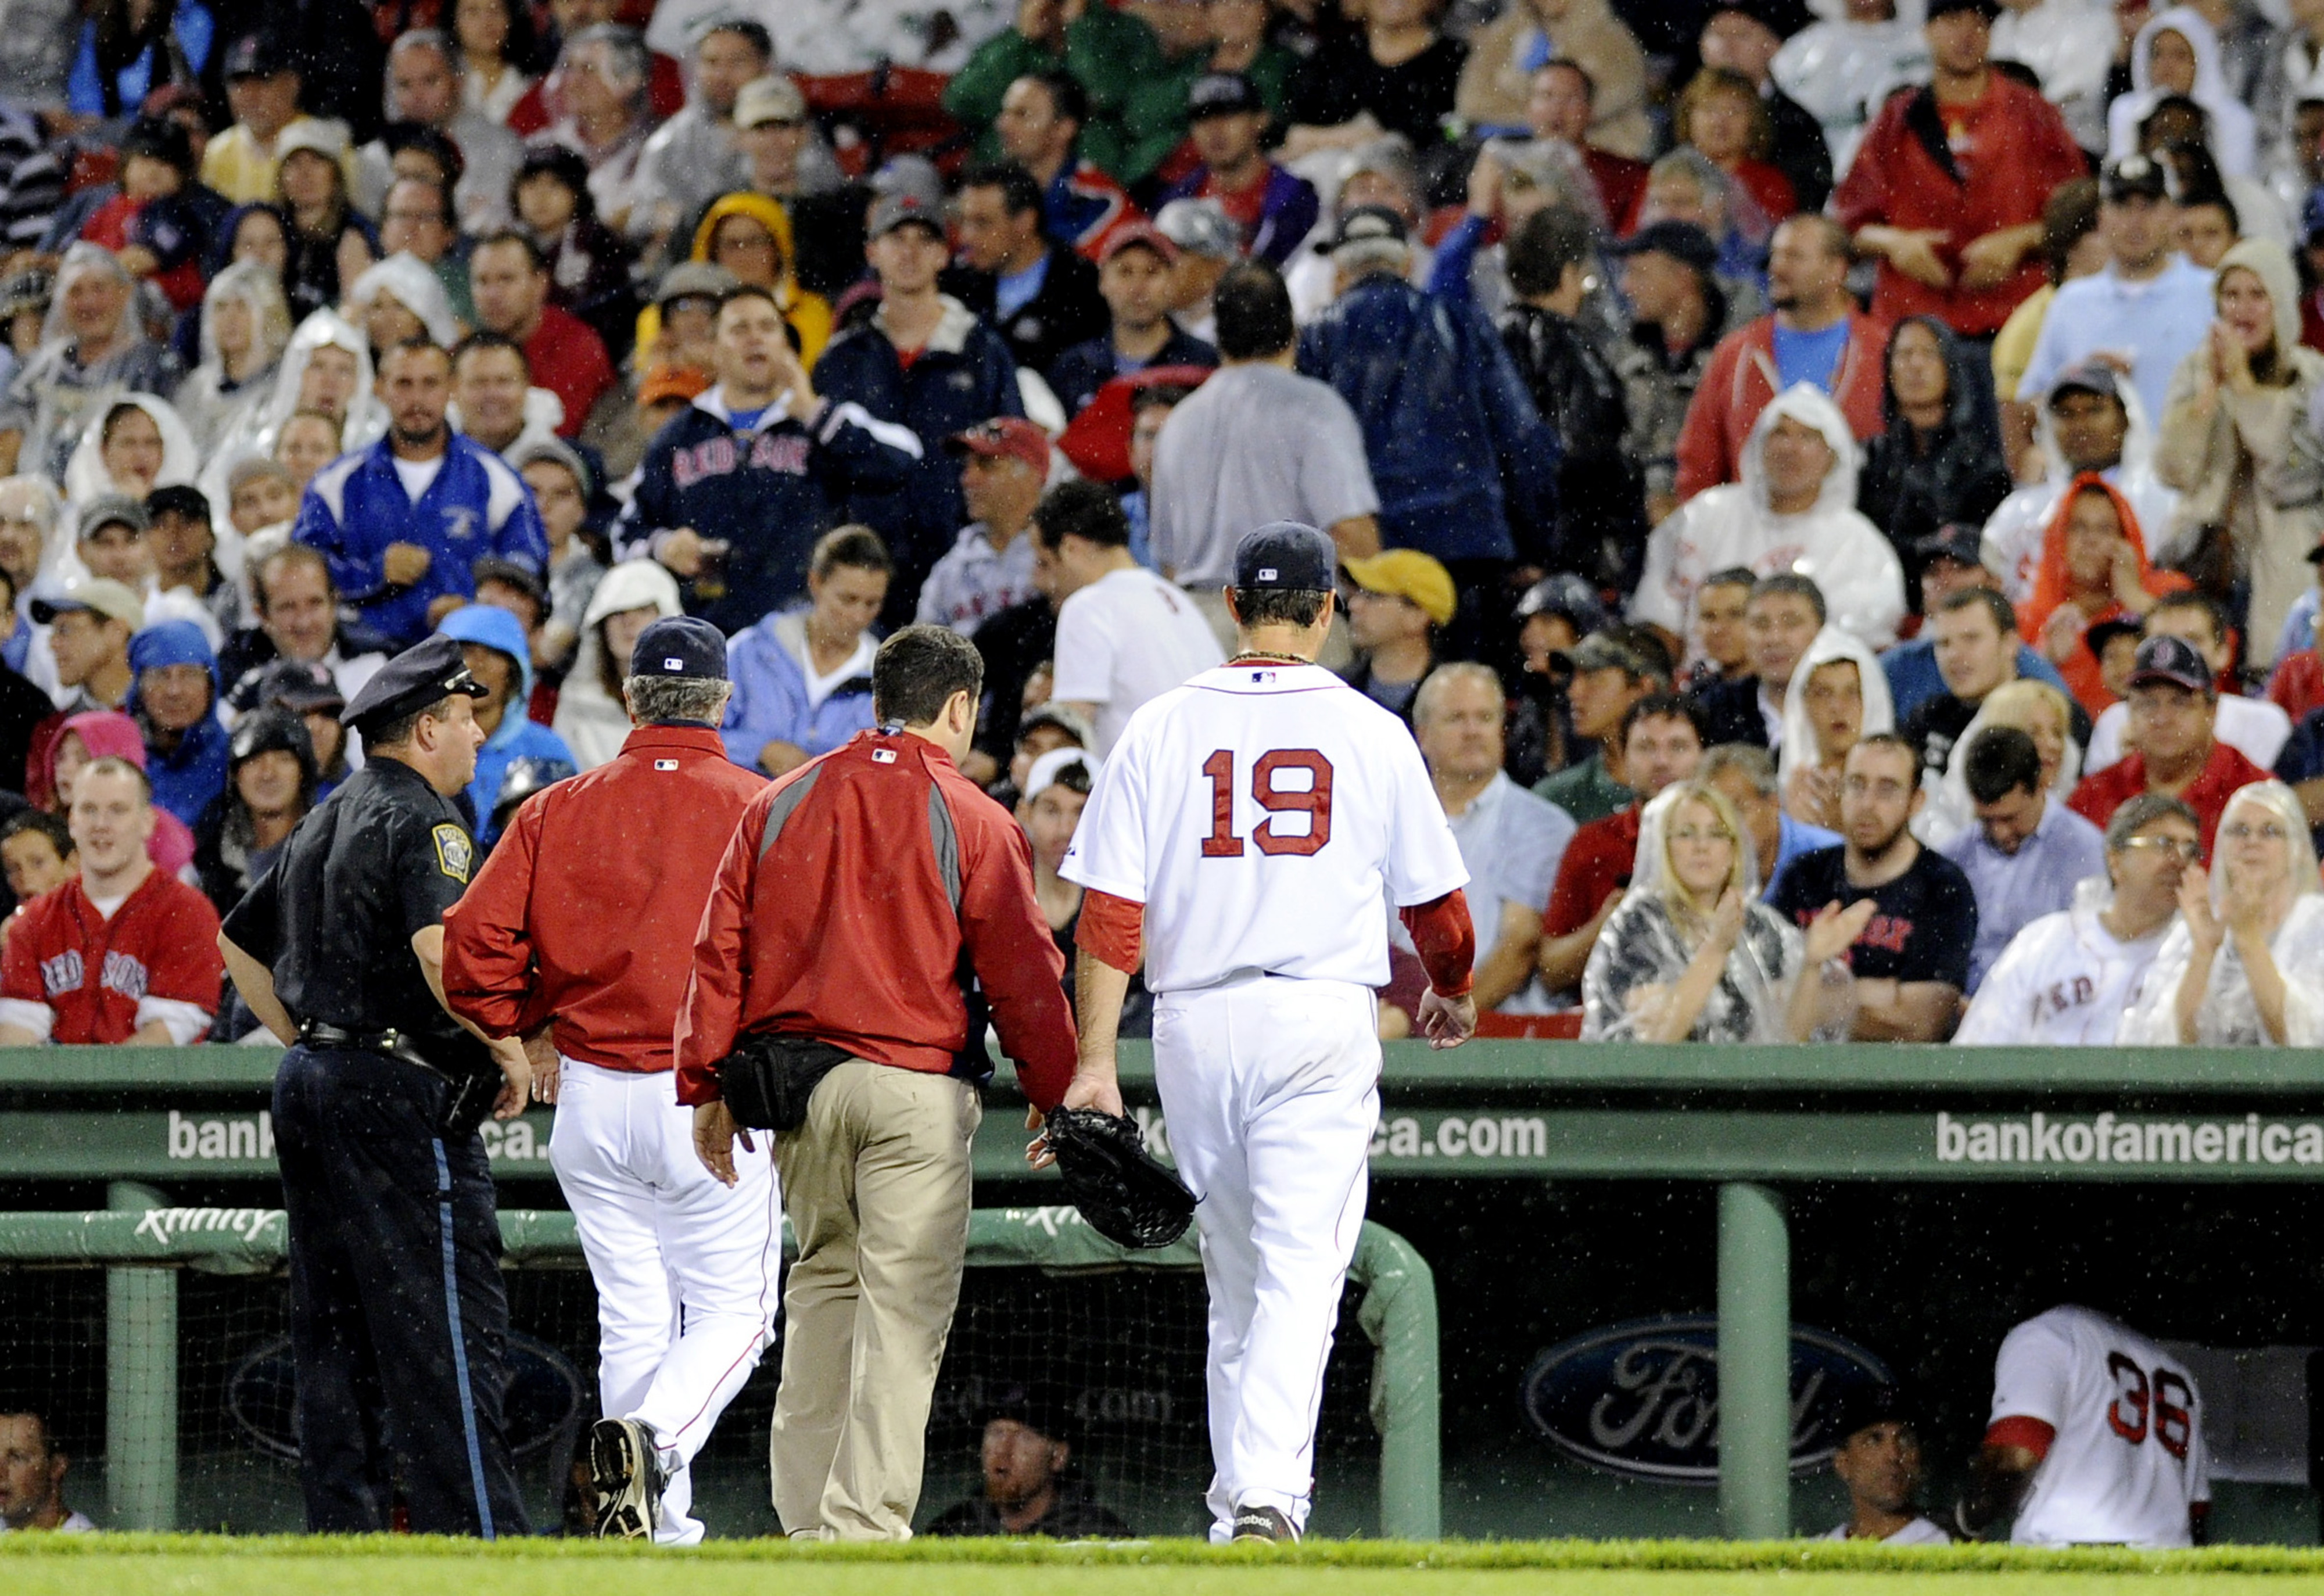 July 31, 2012; Boston, MA, USA; Boston Red Sox starting pitcher Josh Beckett (19) walks off the mound with an apparent injury during the third inning against the Detroit Tigers at Fenway Park. Mandatory Credit: Bob DeChiara-US PRESSWIRE